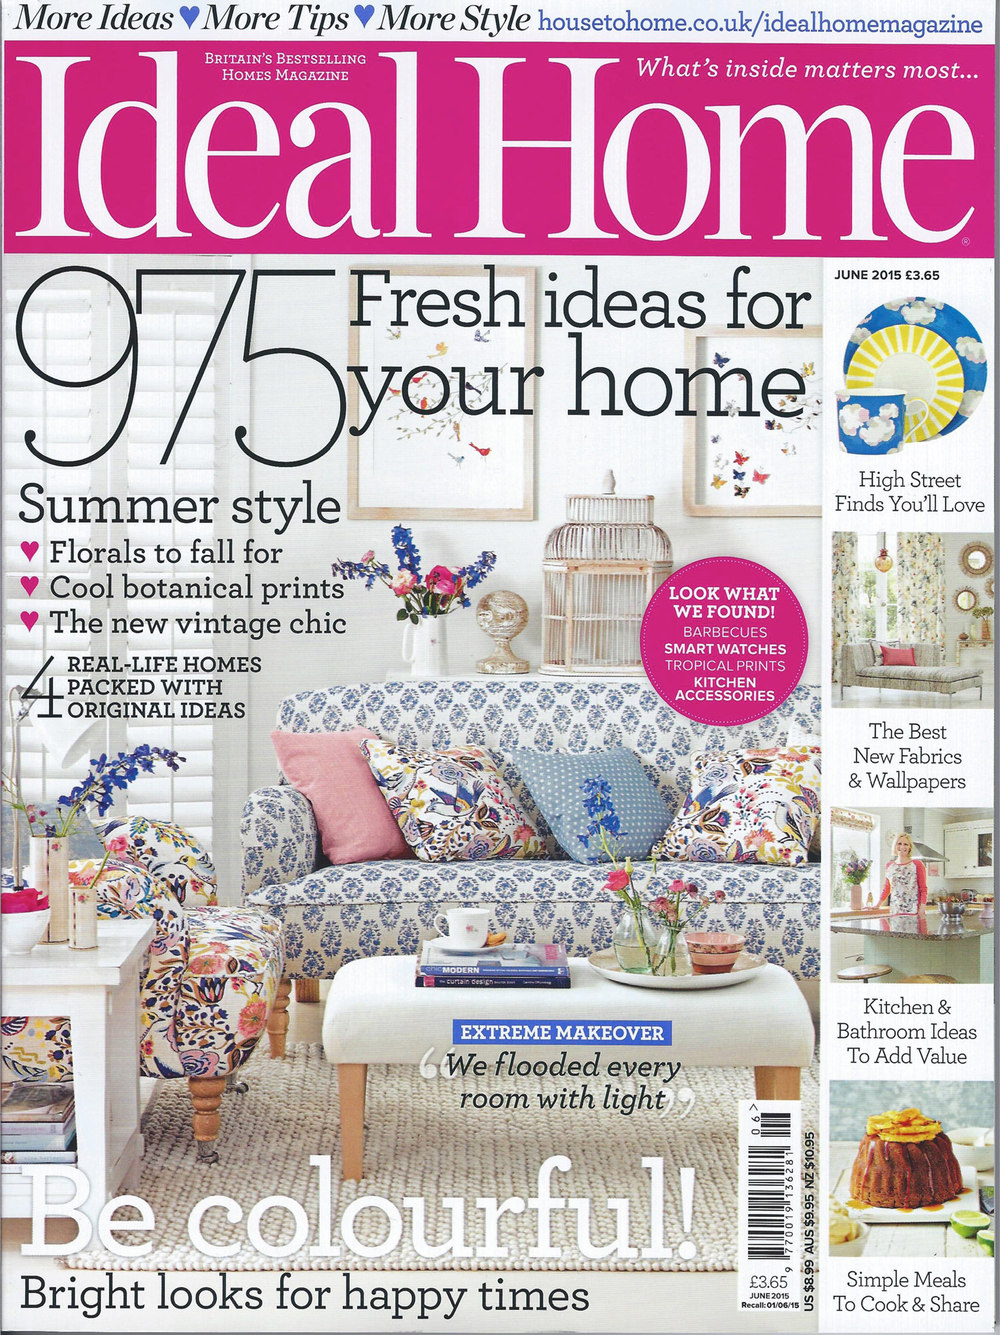 Ideal Home, June 2015 cover, feat Eloise Hall original collages